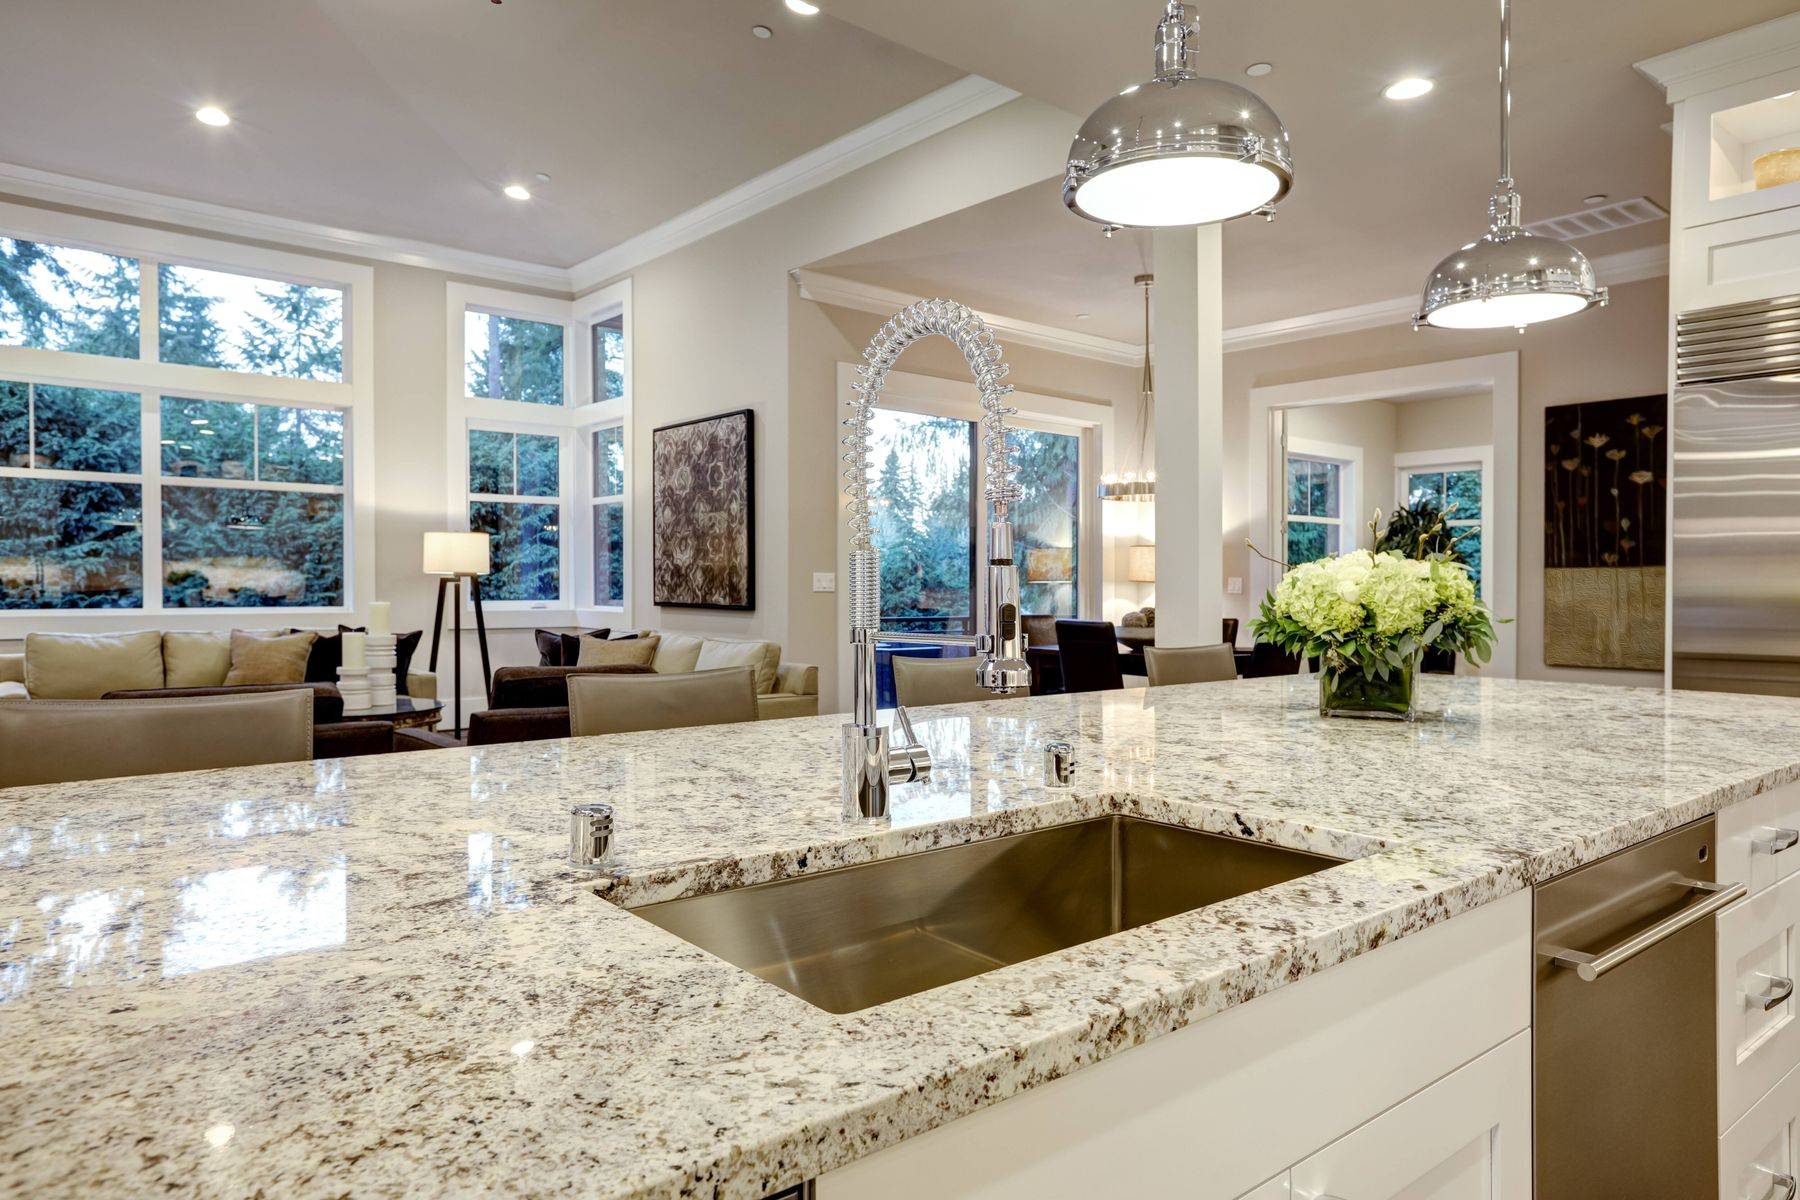 check out how you can avoid chipping of your shiny granite kitchen countertop